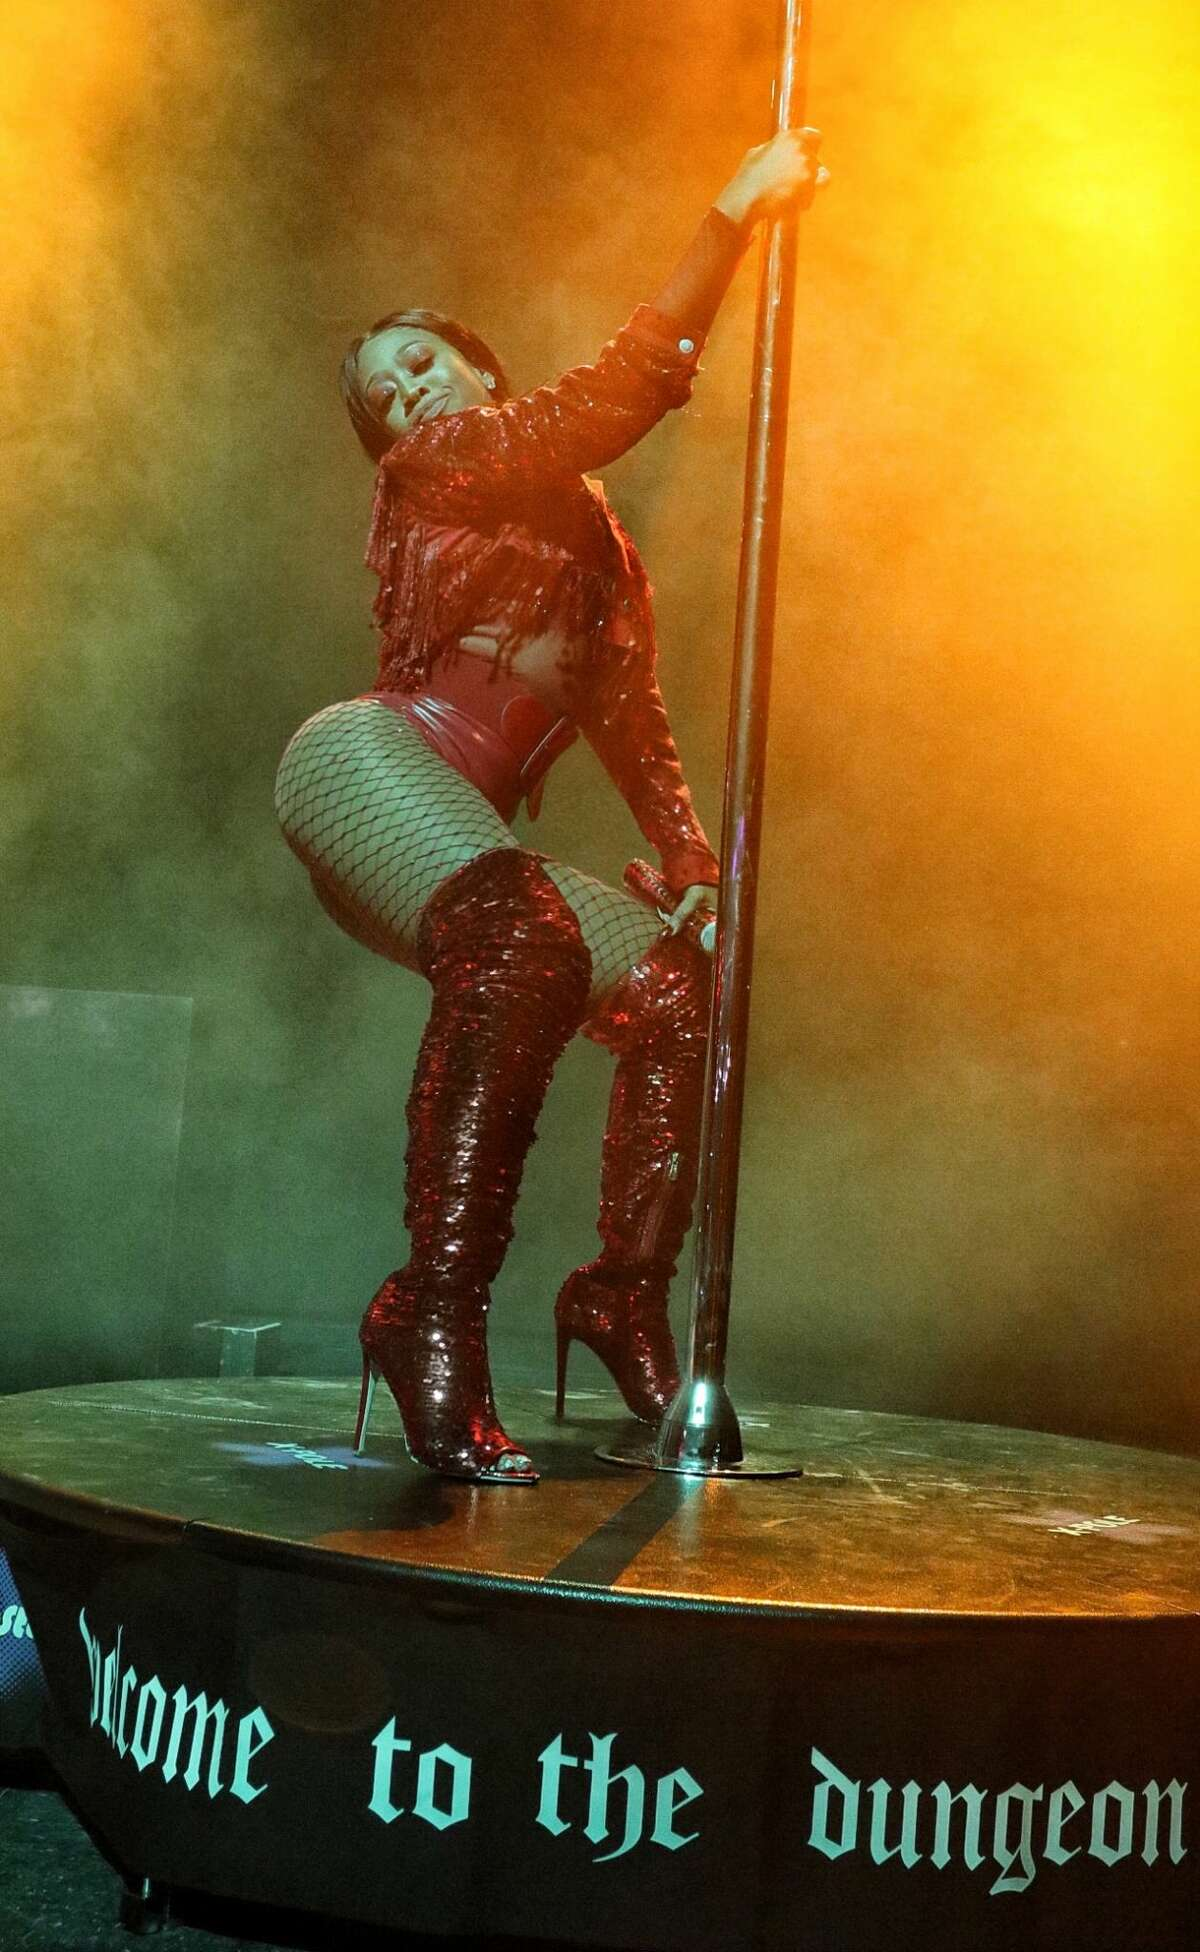 """Kandi Burruss is bringing her """"Welcome to the Dungeon"""" burlesque show to Houston."""